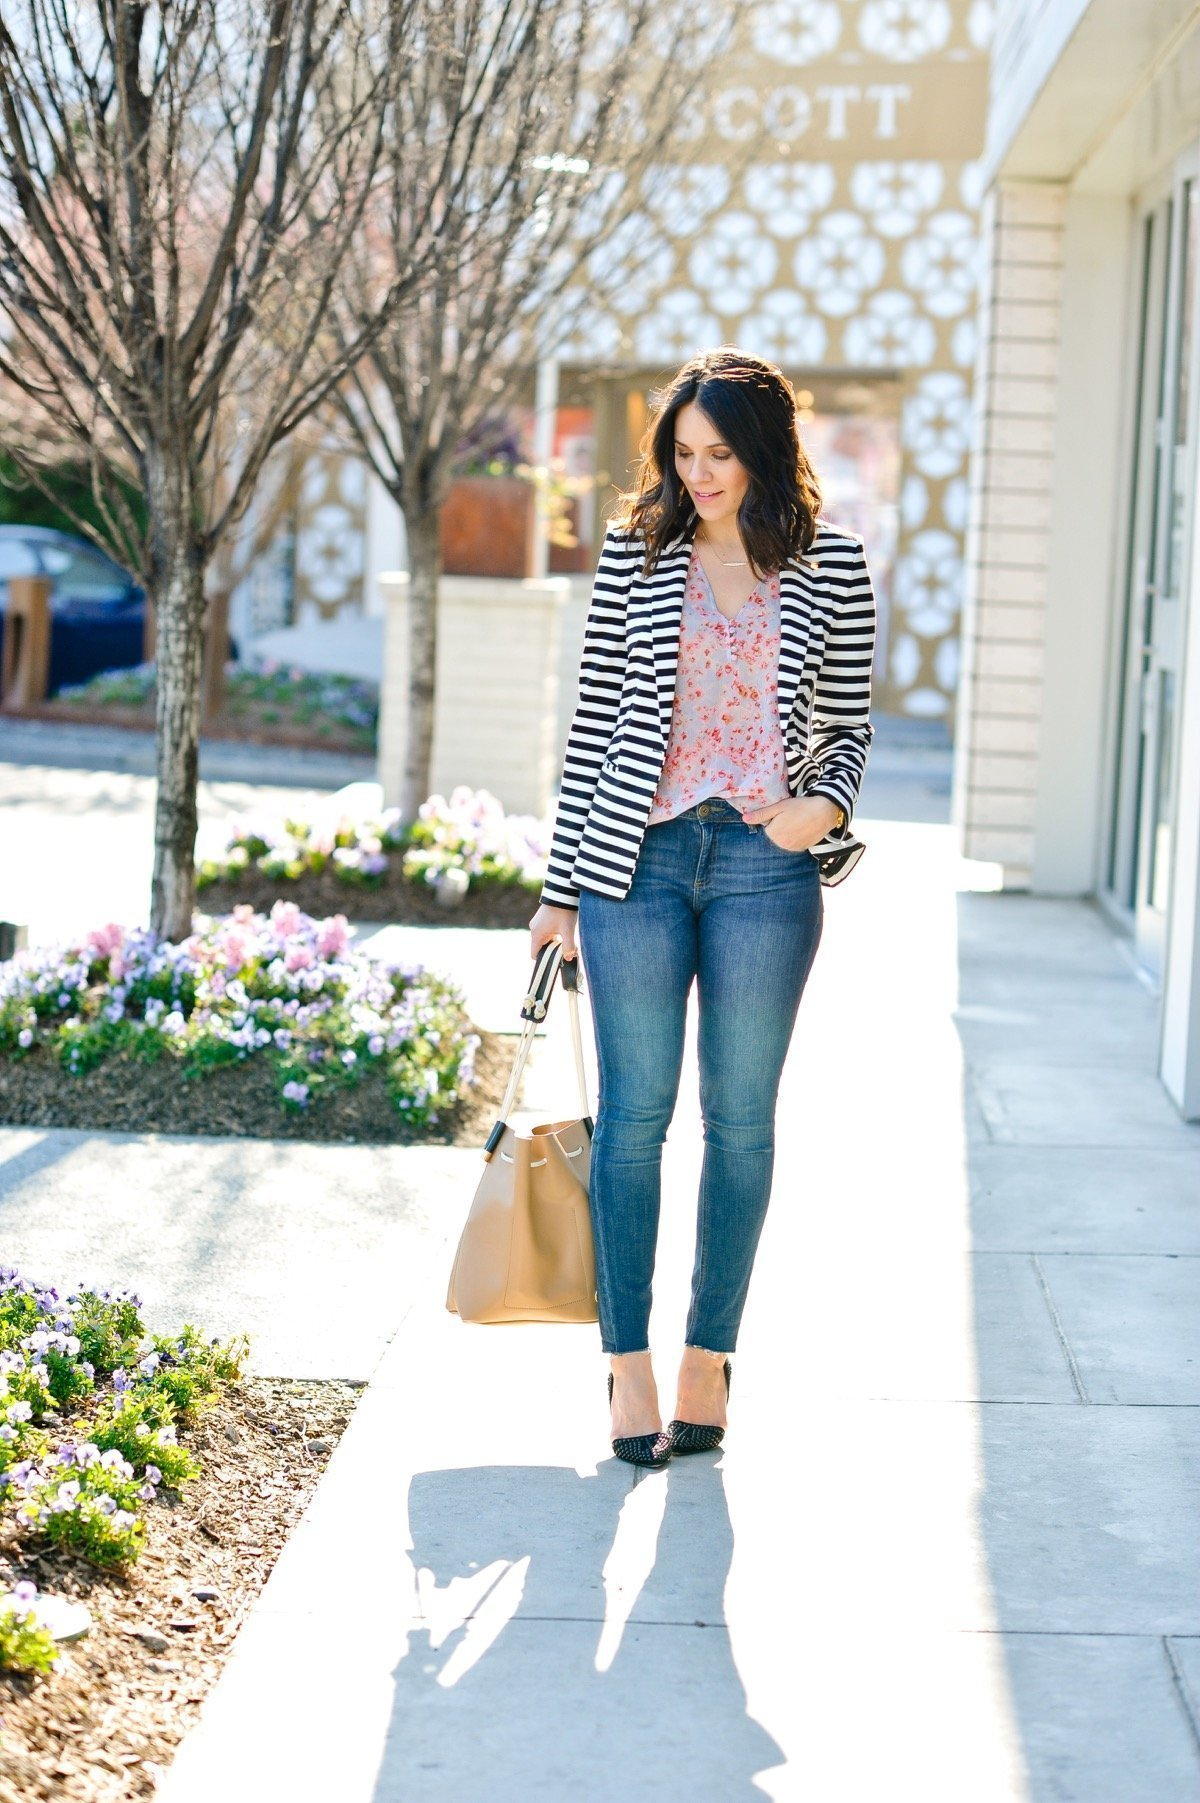 Florals and stripes spring outfit ideas - @mystylevita